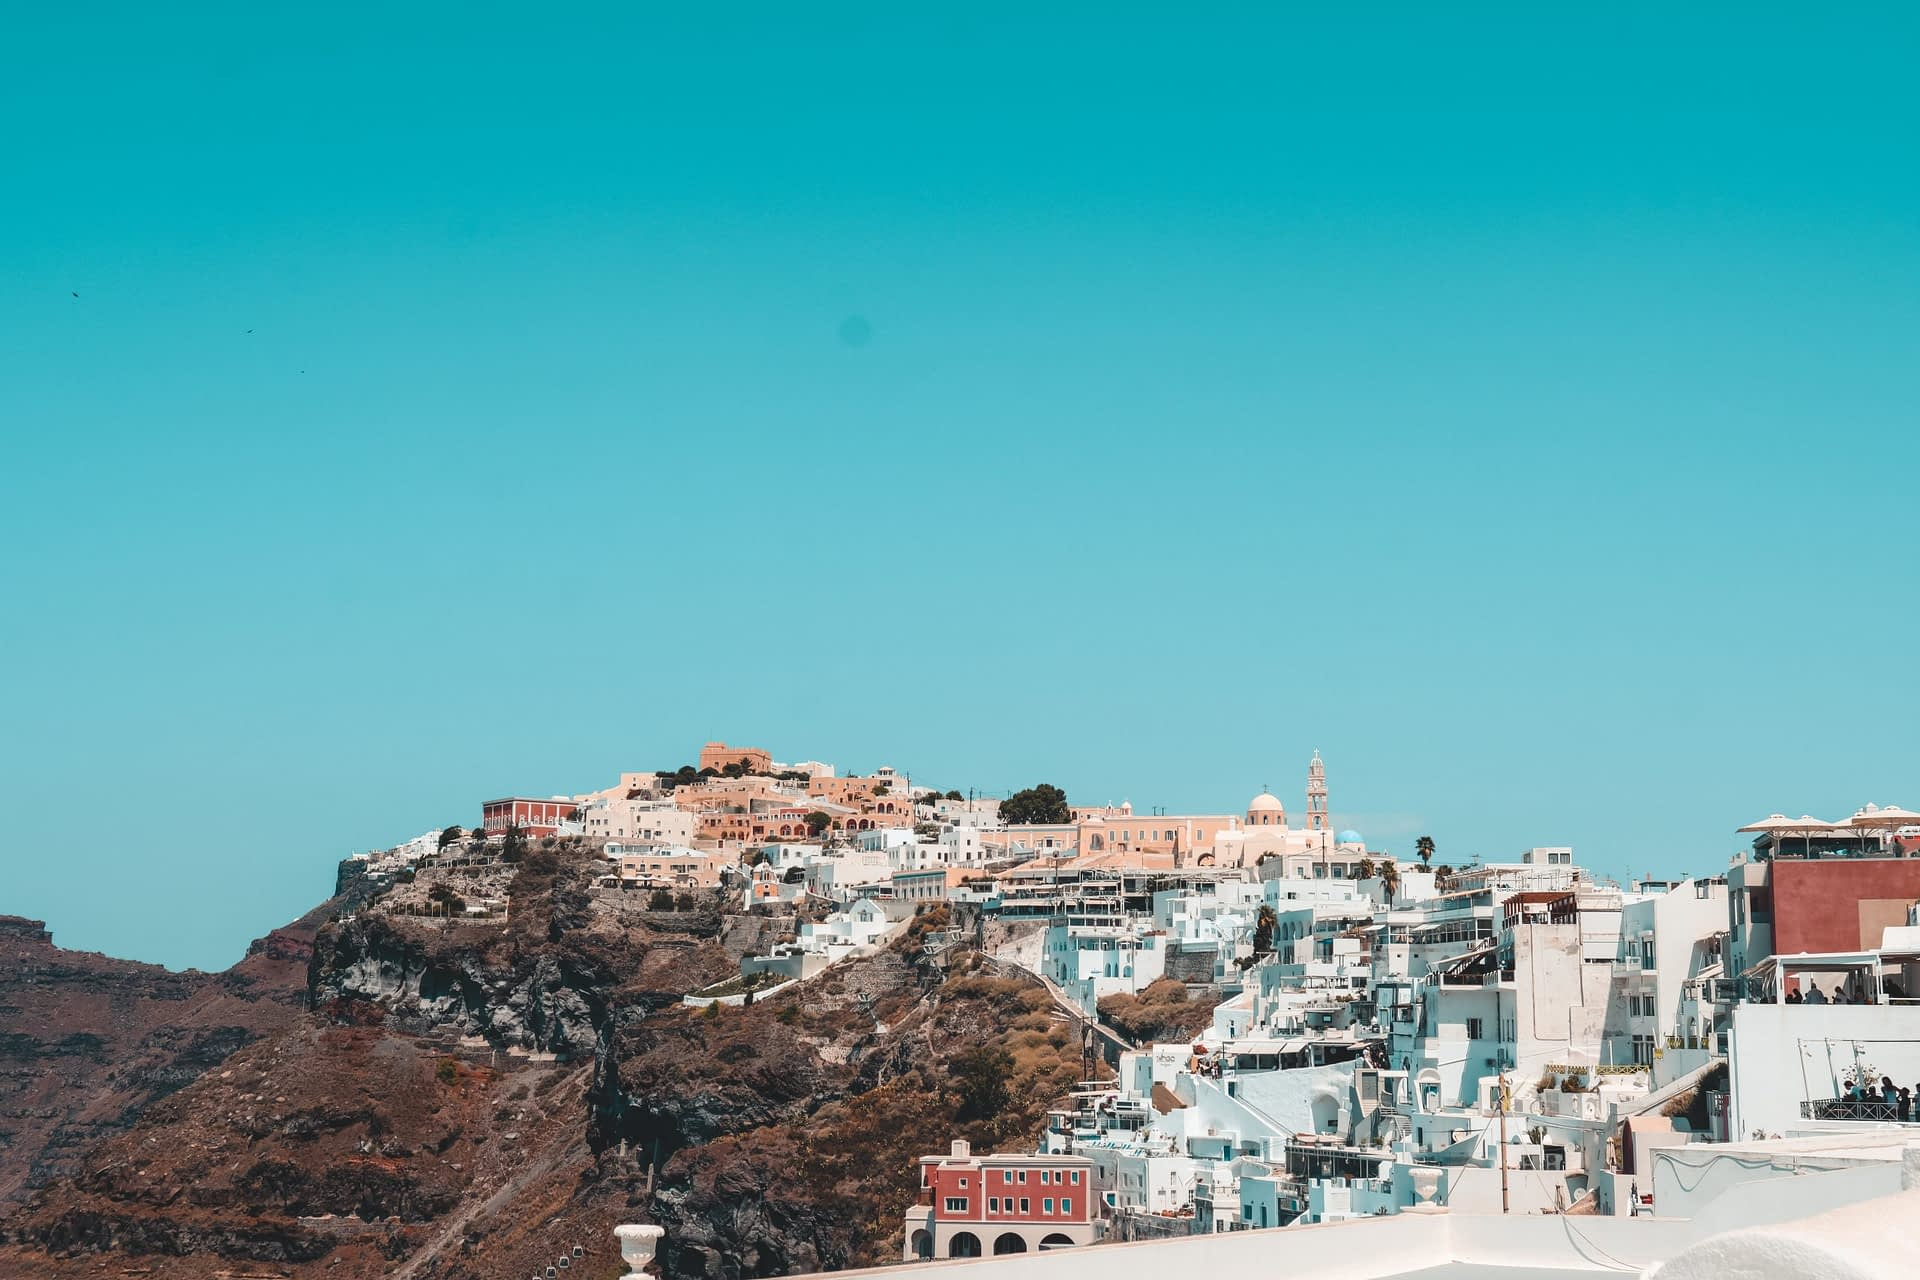 A view of the pastel buildings in Thira